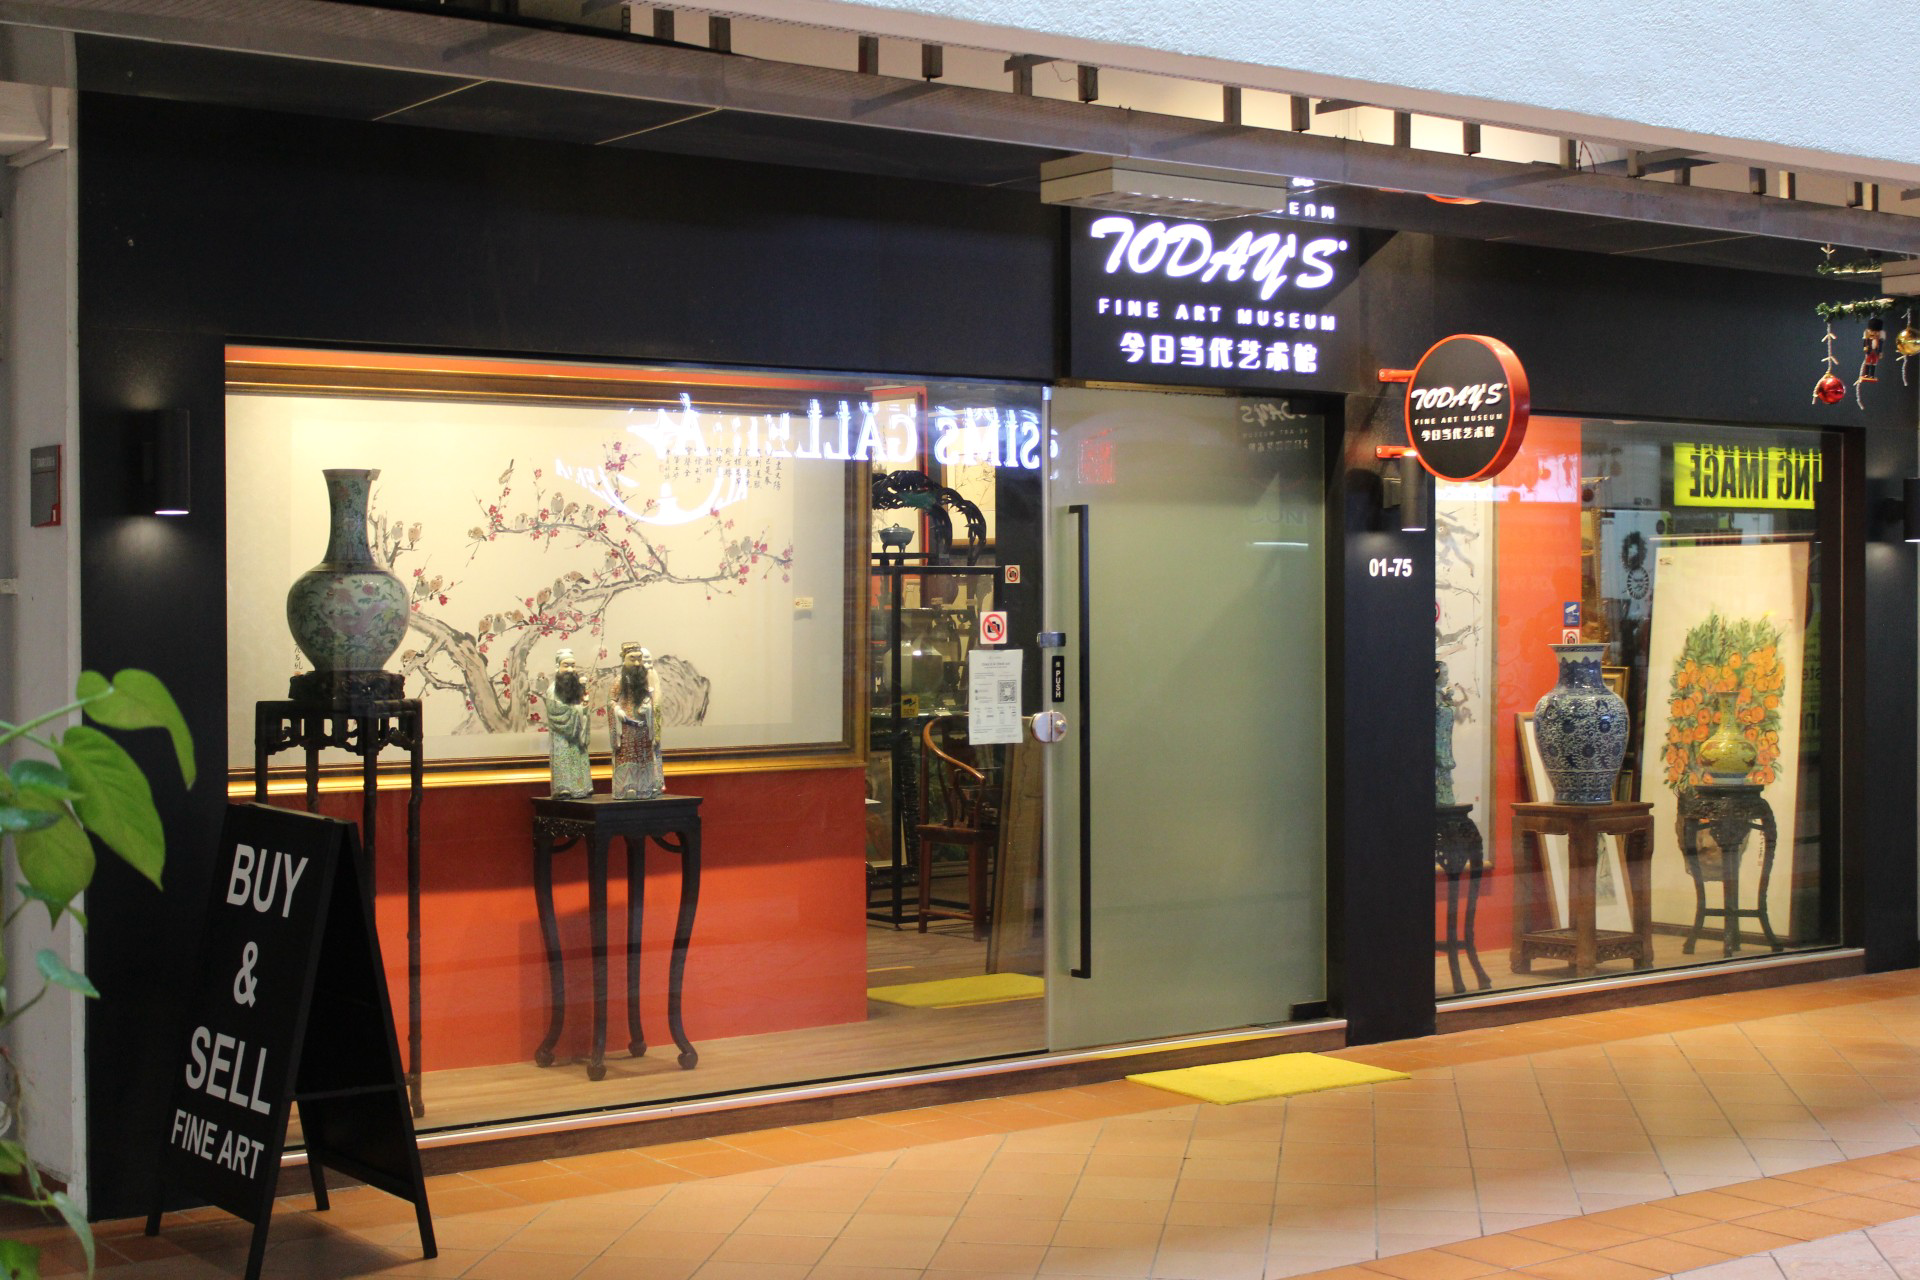 Today Fine Art Museum's storefront